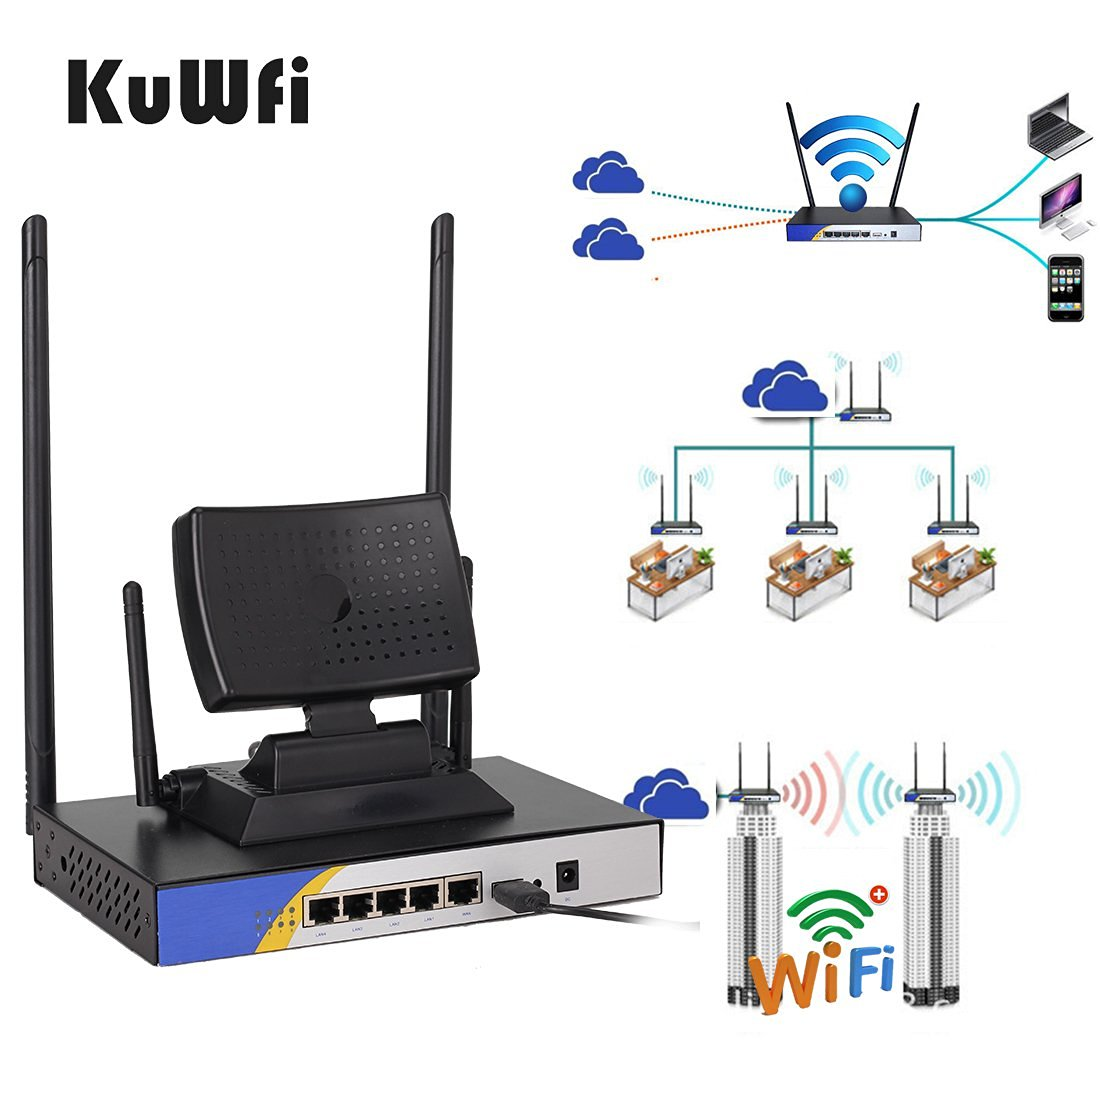 KuWFi Metal case 300mbps High Power Wireless Router with USB Port with USB interface.Specilized for wifi usb adapter,free wifi usb adapter to computer repeat longer distance wifi signal